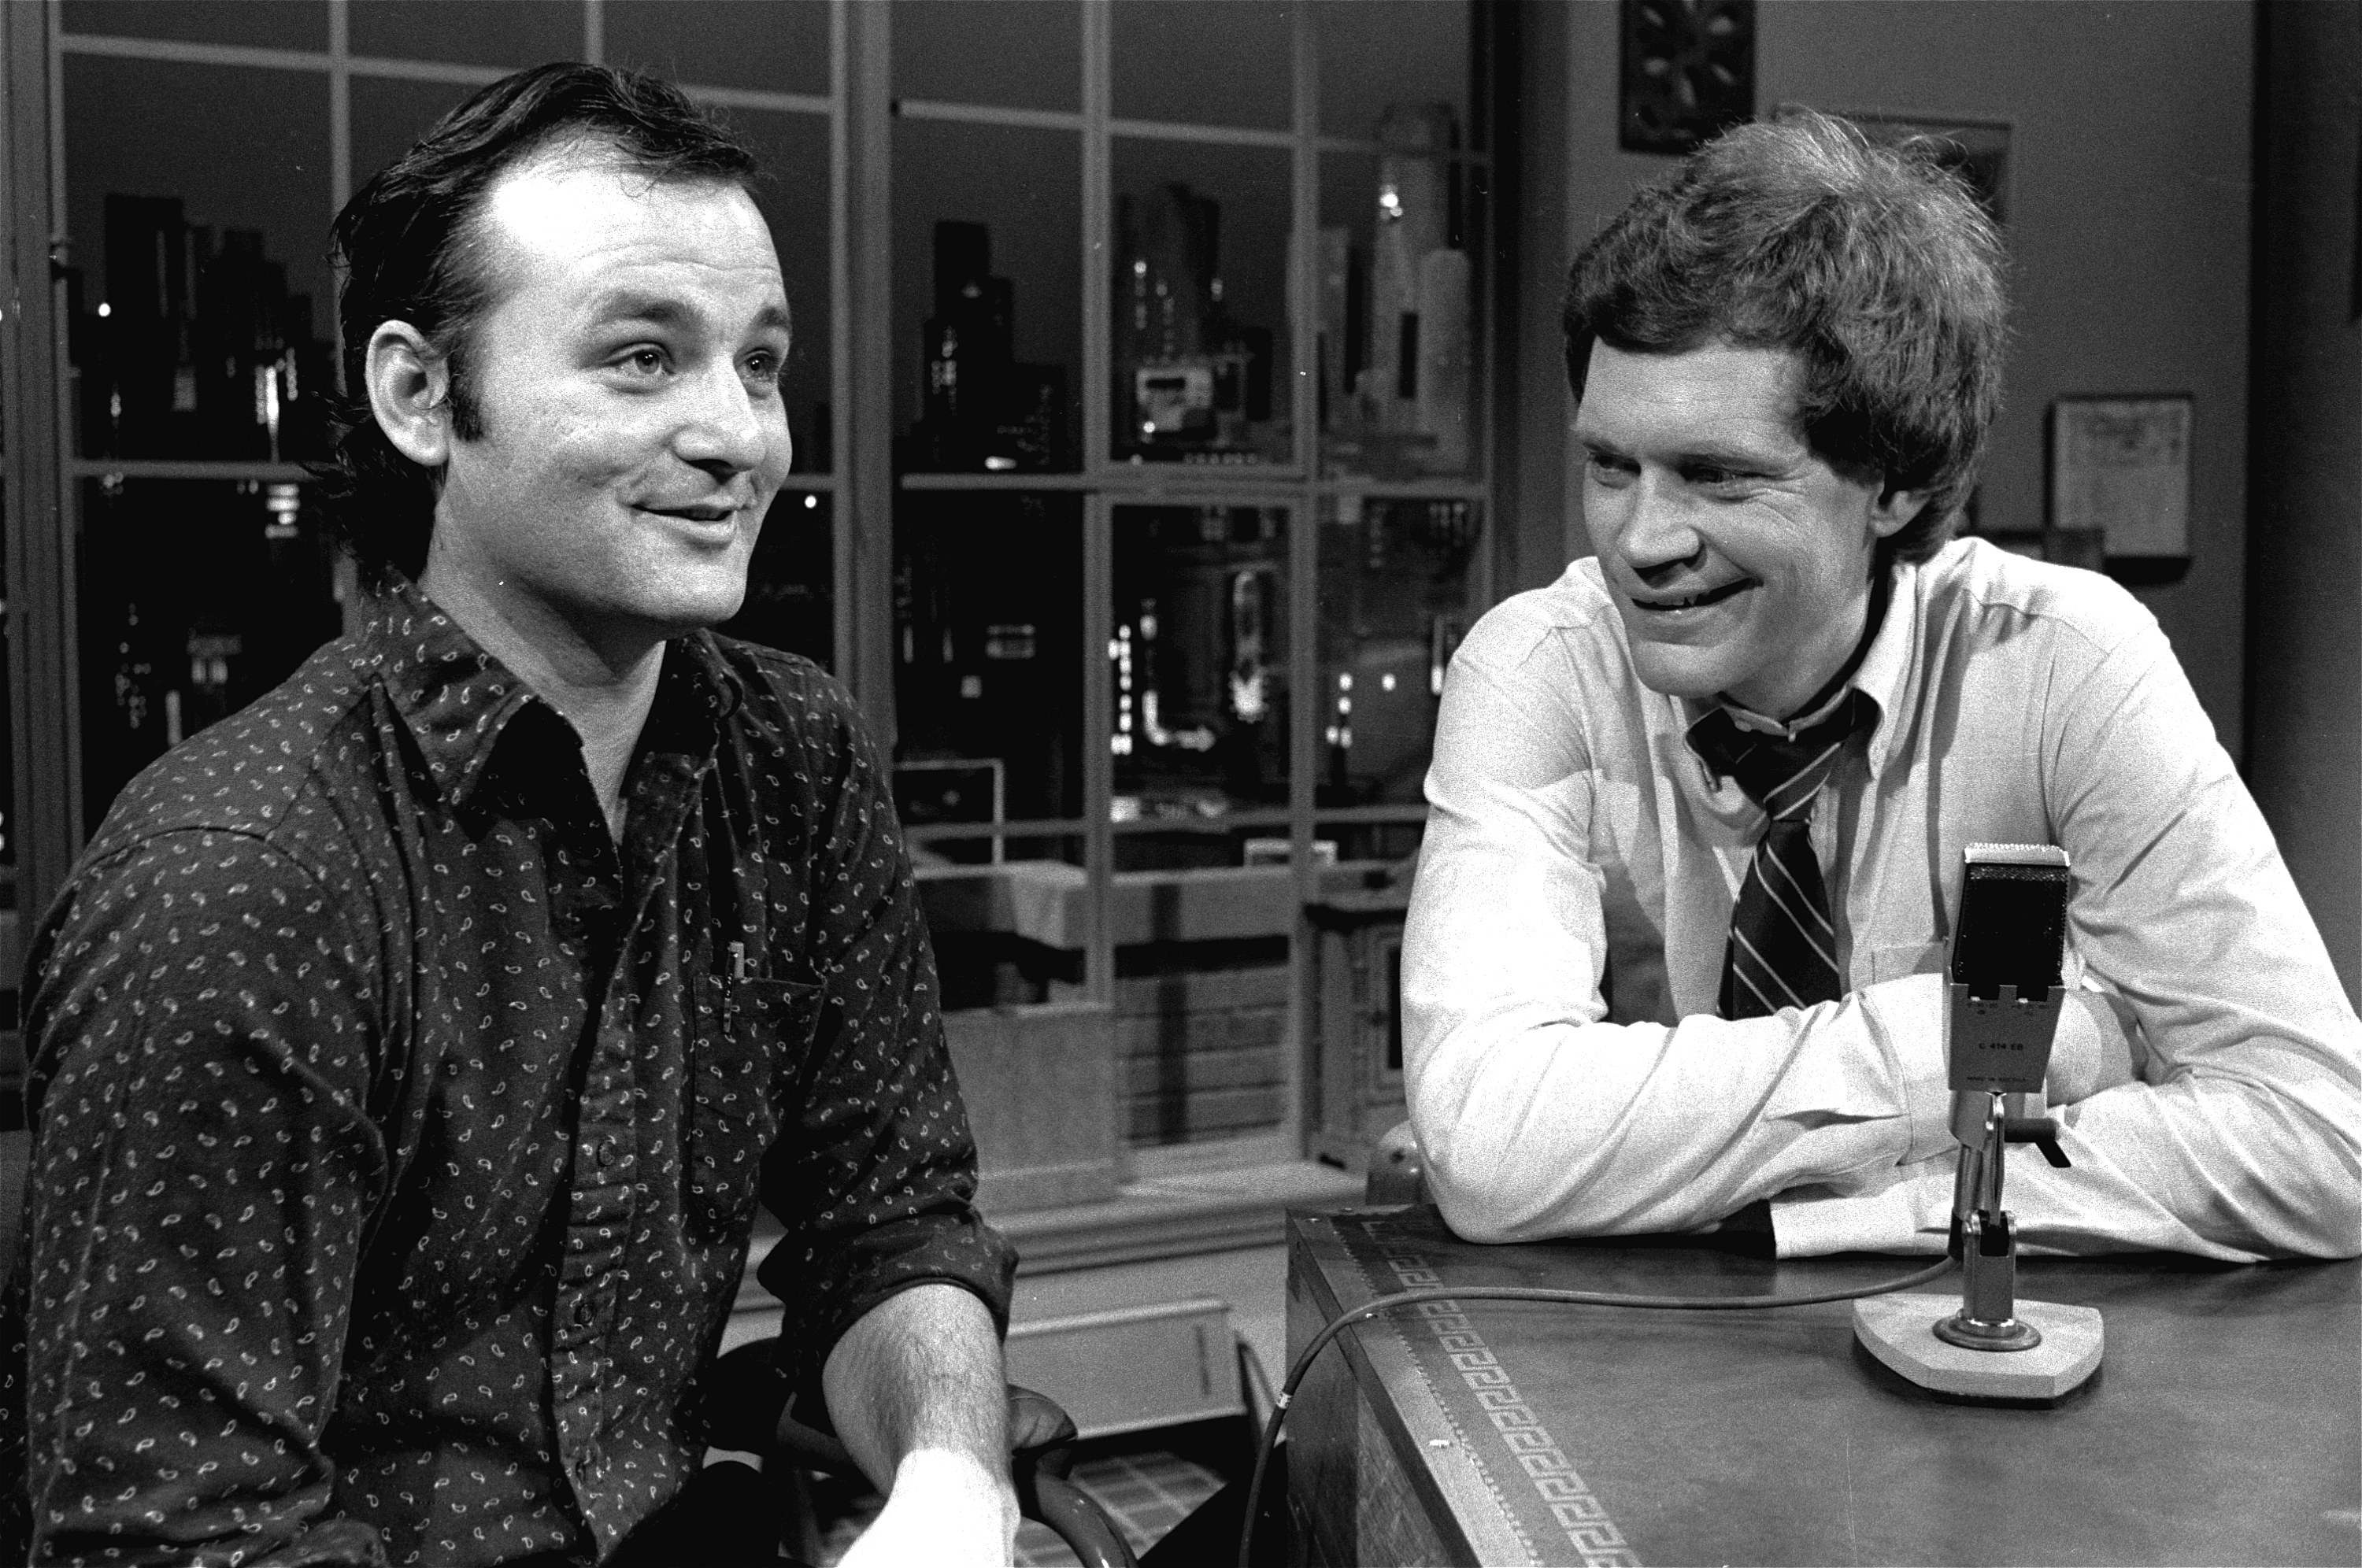 A collection of Letterman's funniest moments, by one of his first colleagues